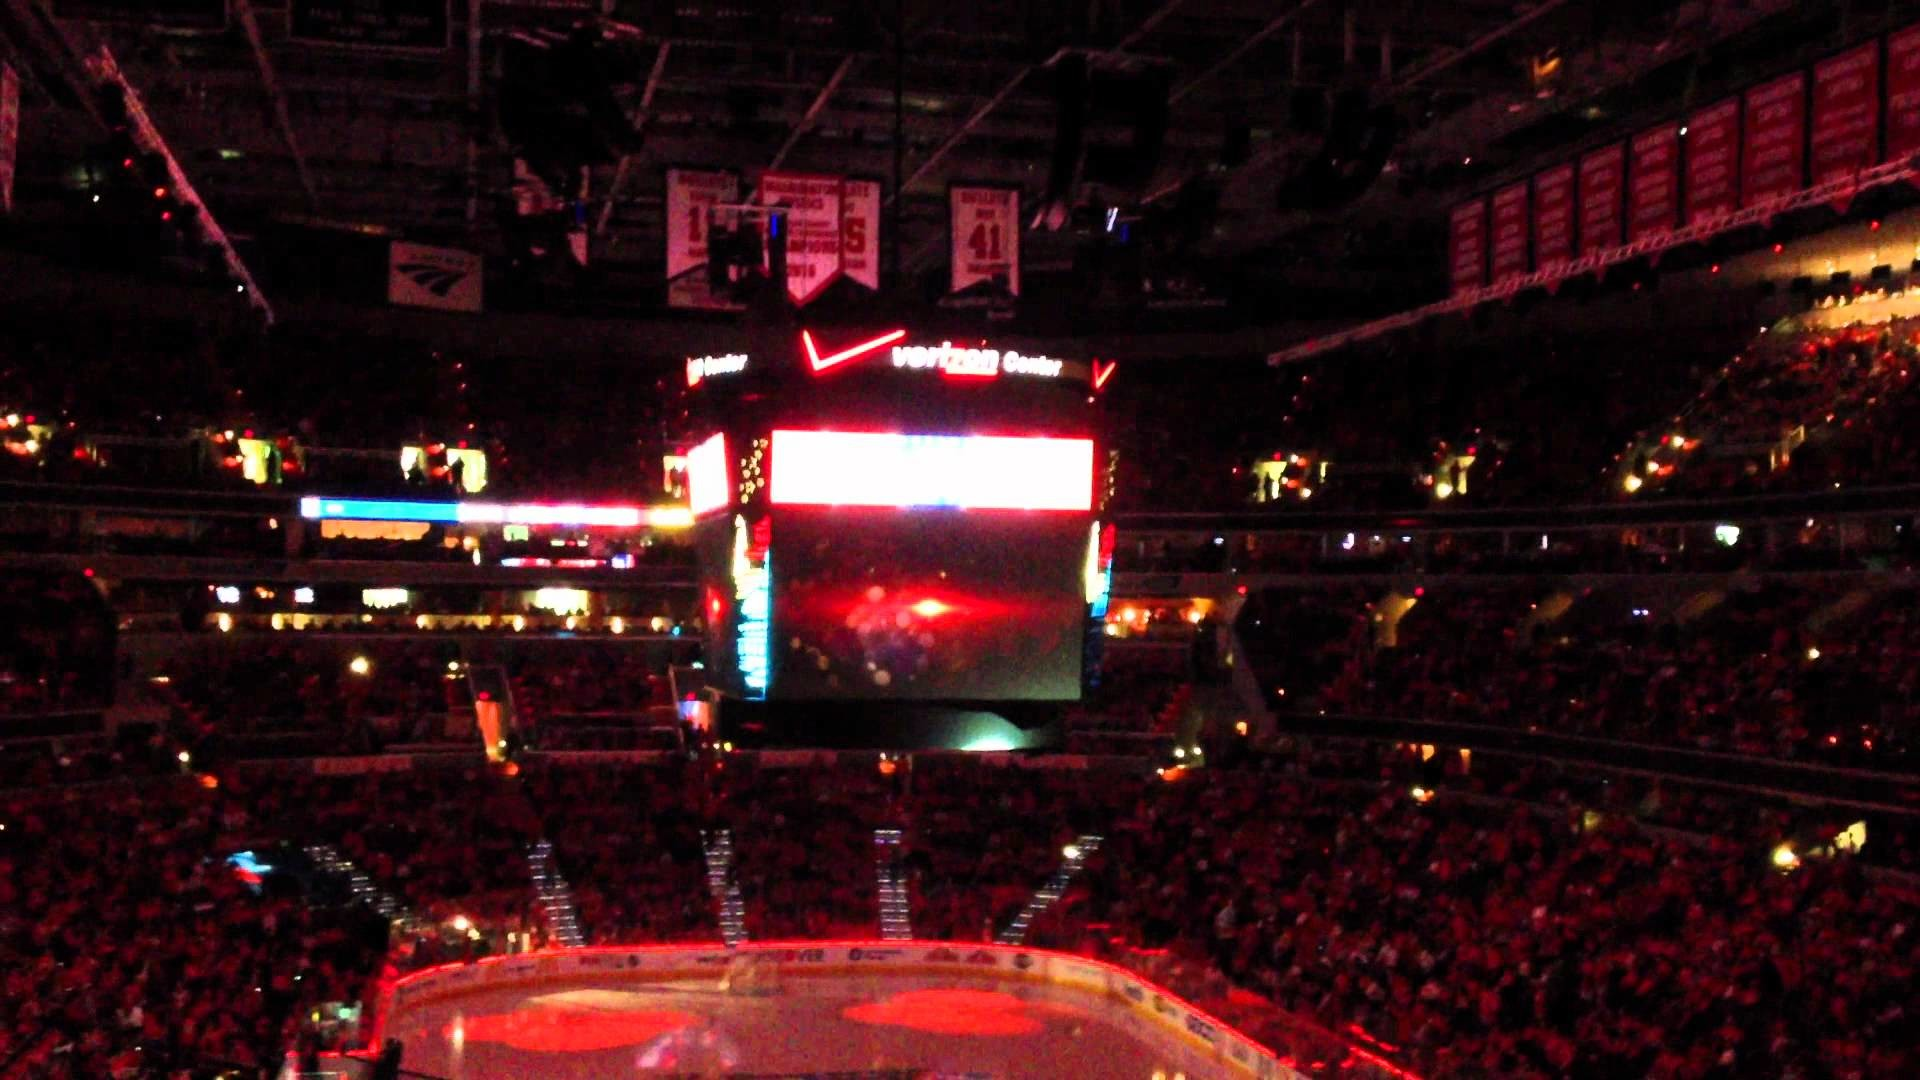 1920x1080 Washington Capitals inGame Playoff Intro Video 2012